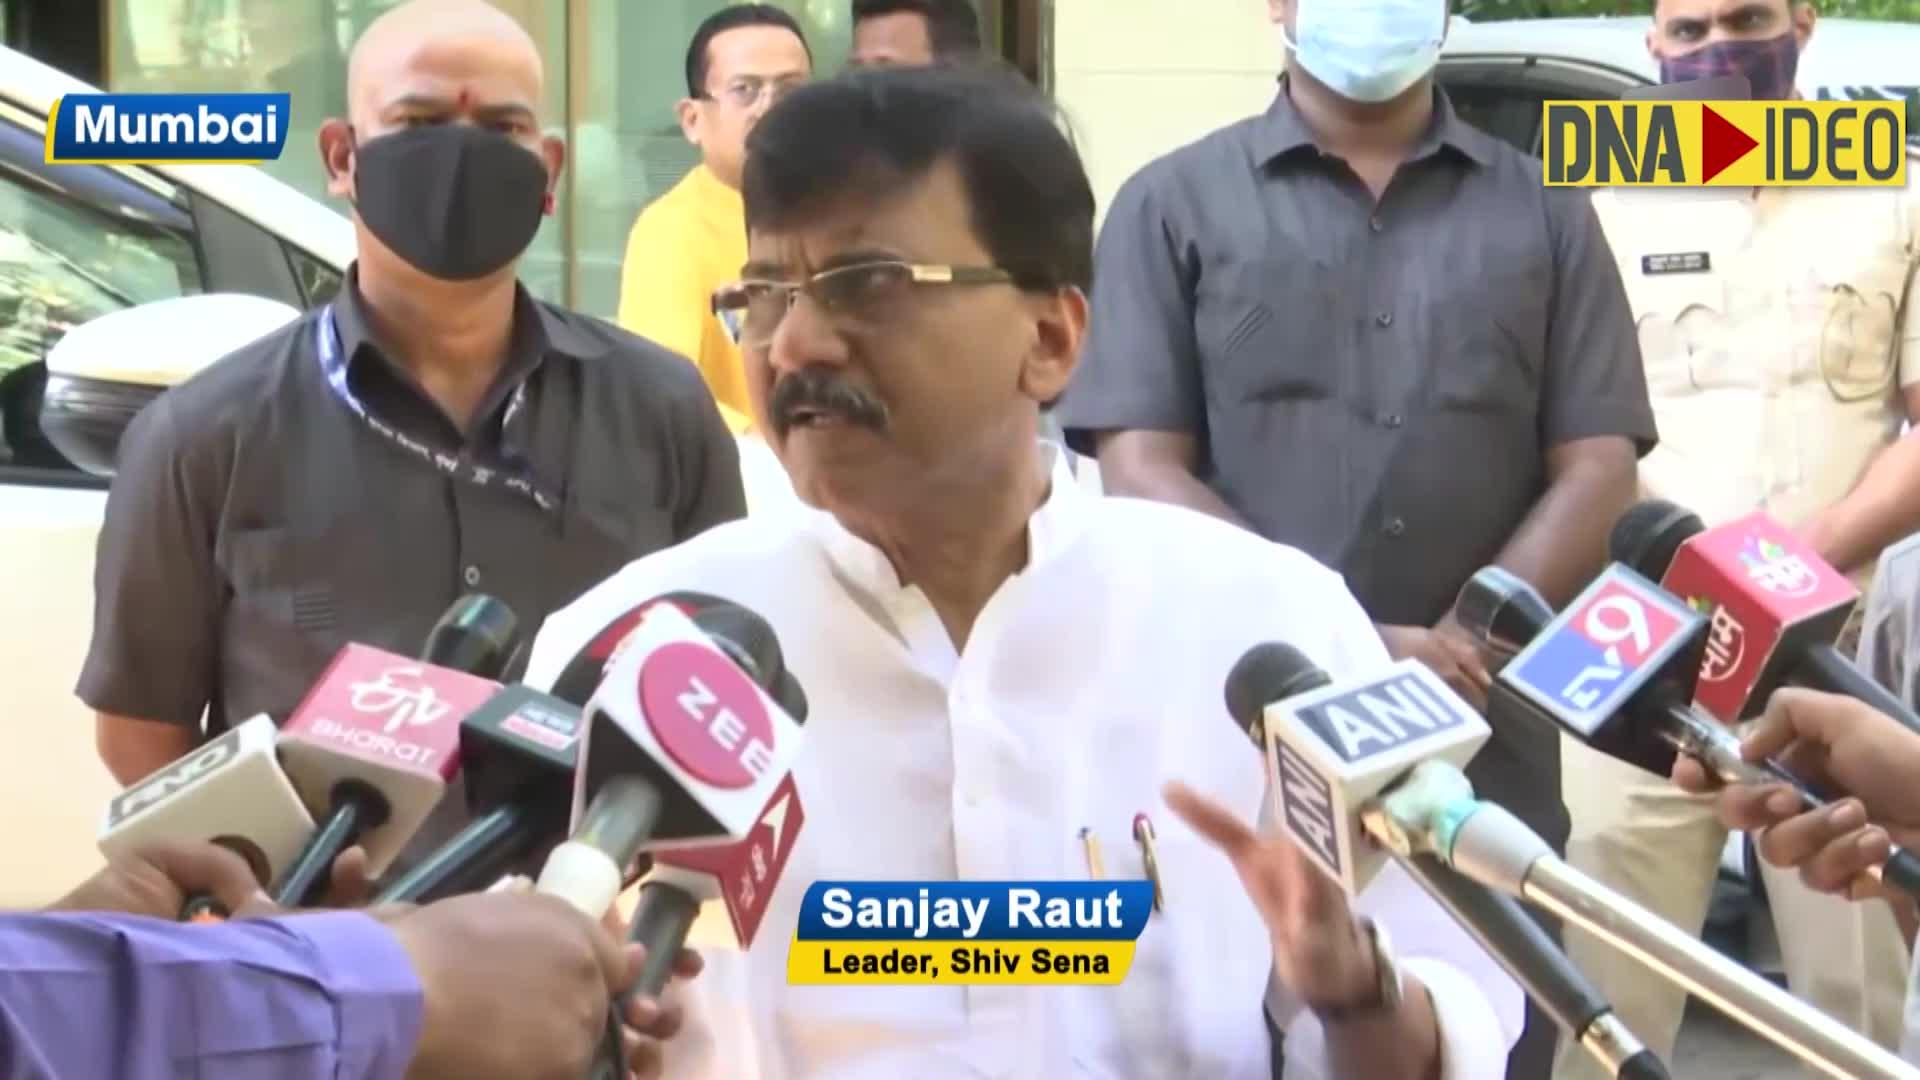 People involved in extortion, lodge fake cases on Deshbhakti pretext: Sanjay Raut on drug case